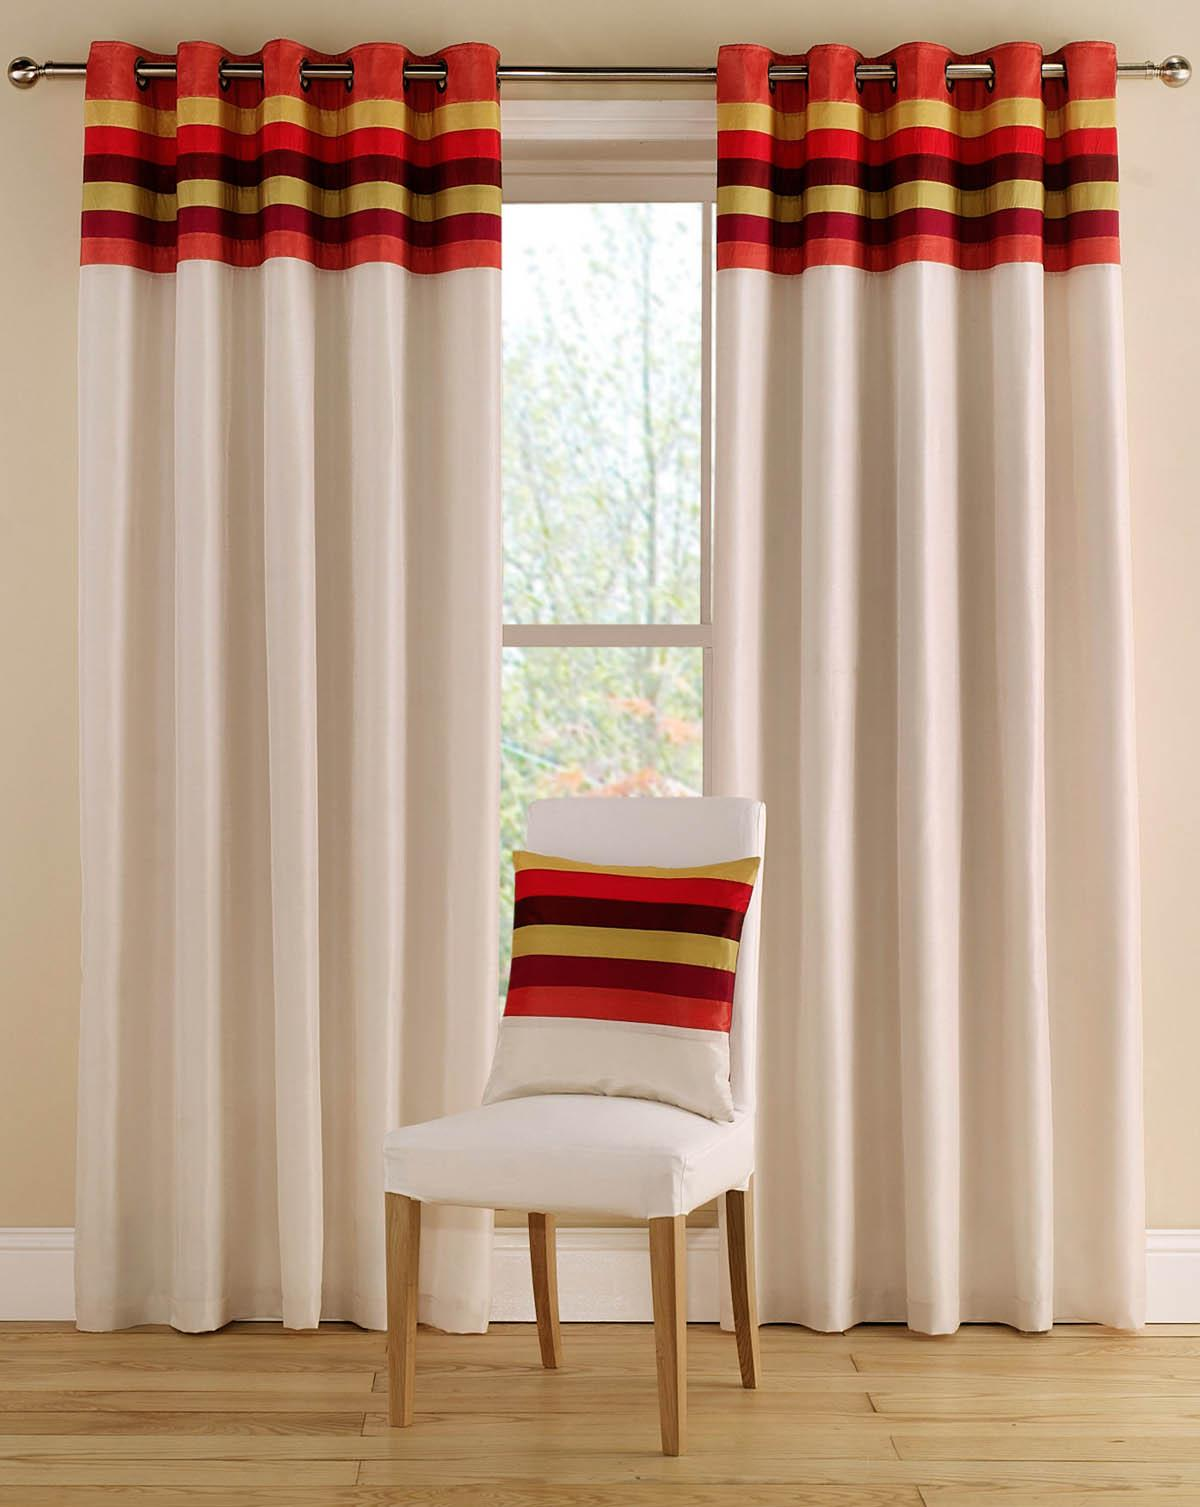 Terracotta Curtains Shop For Cheap Curtains Amp Blinds And